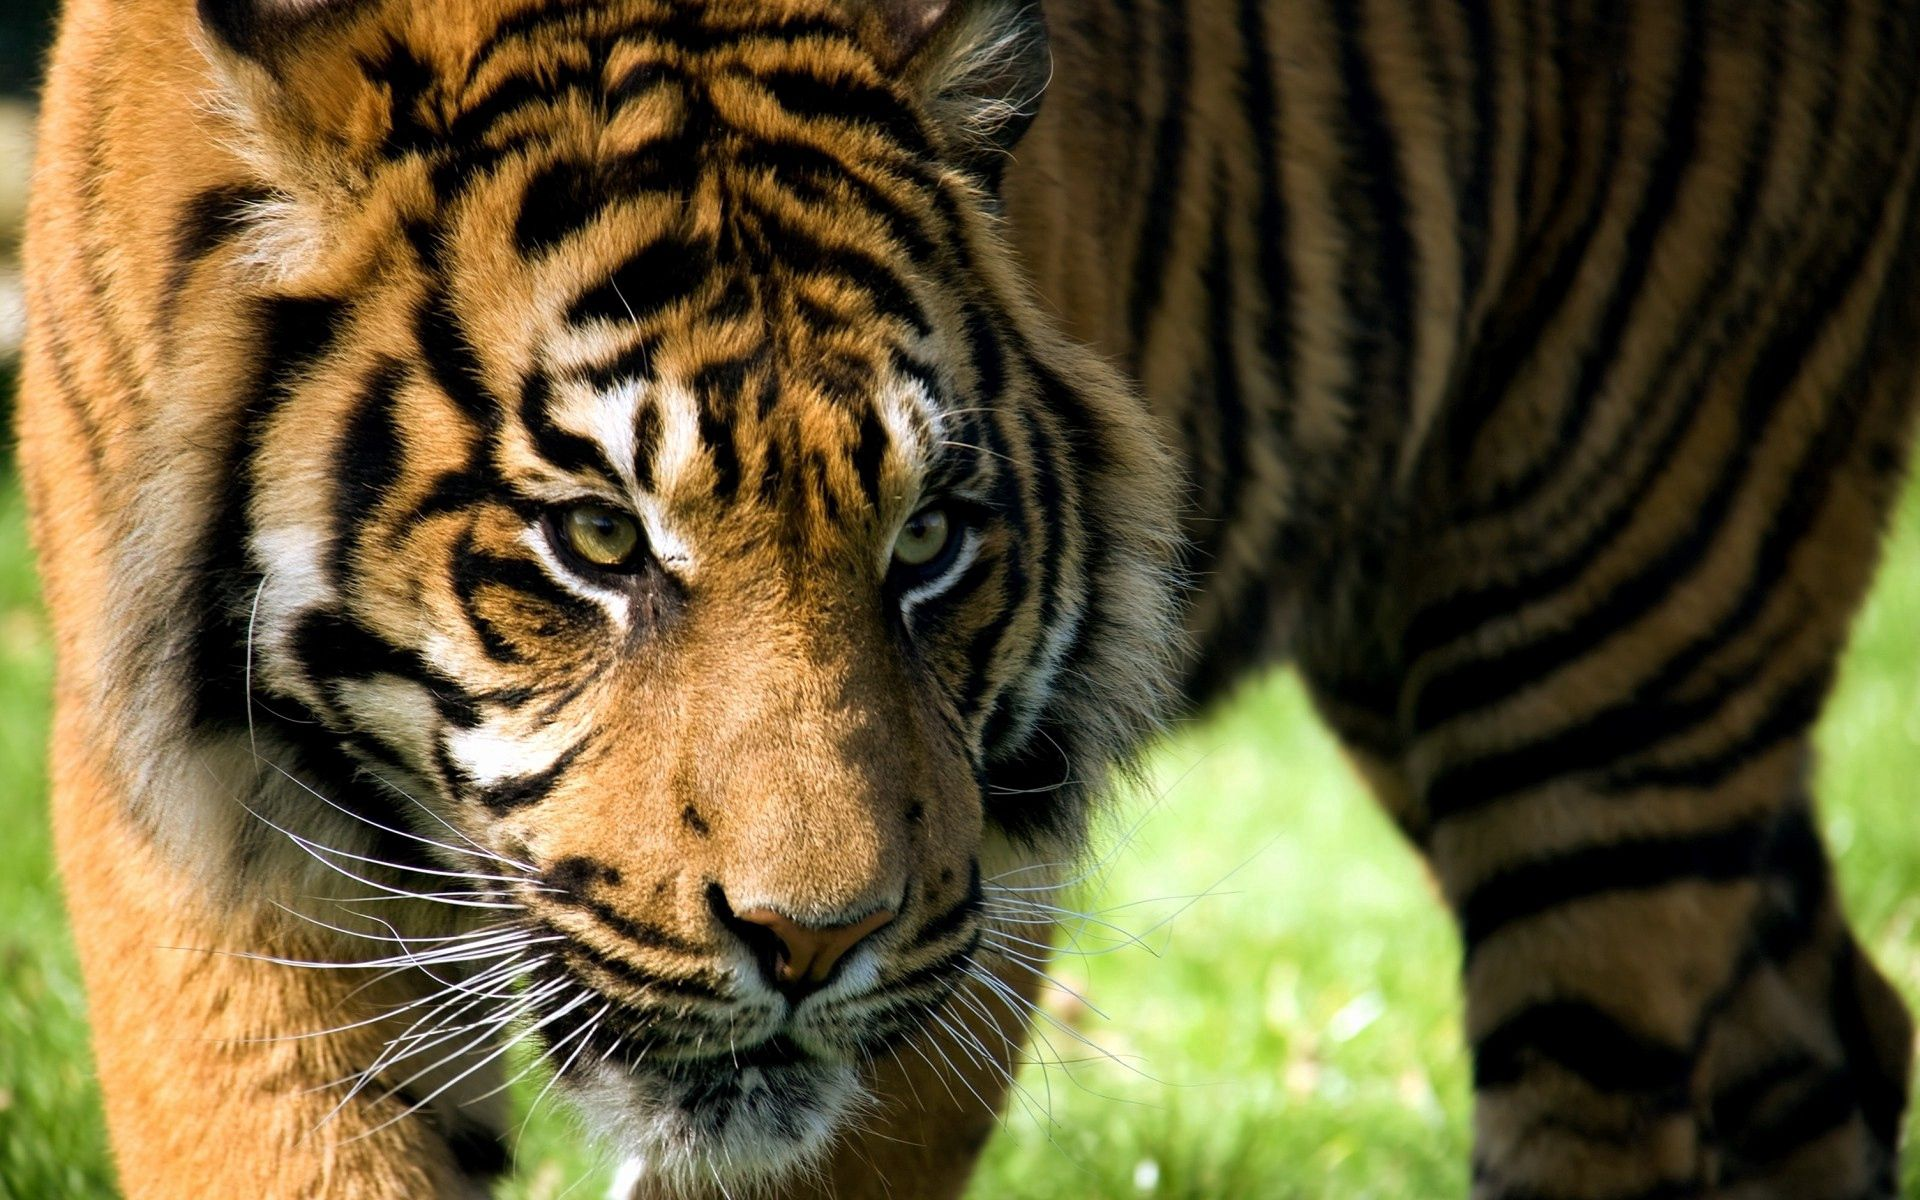 104599 download wallpaper Animals, Tiger, Muzzle, Aggression, Sight, Opinion, Predator screensavers and pictures for free